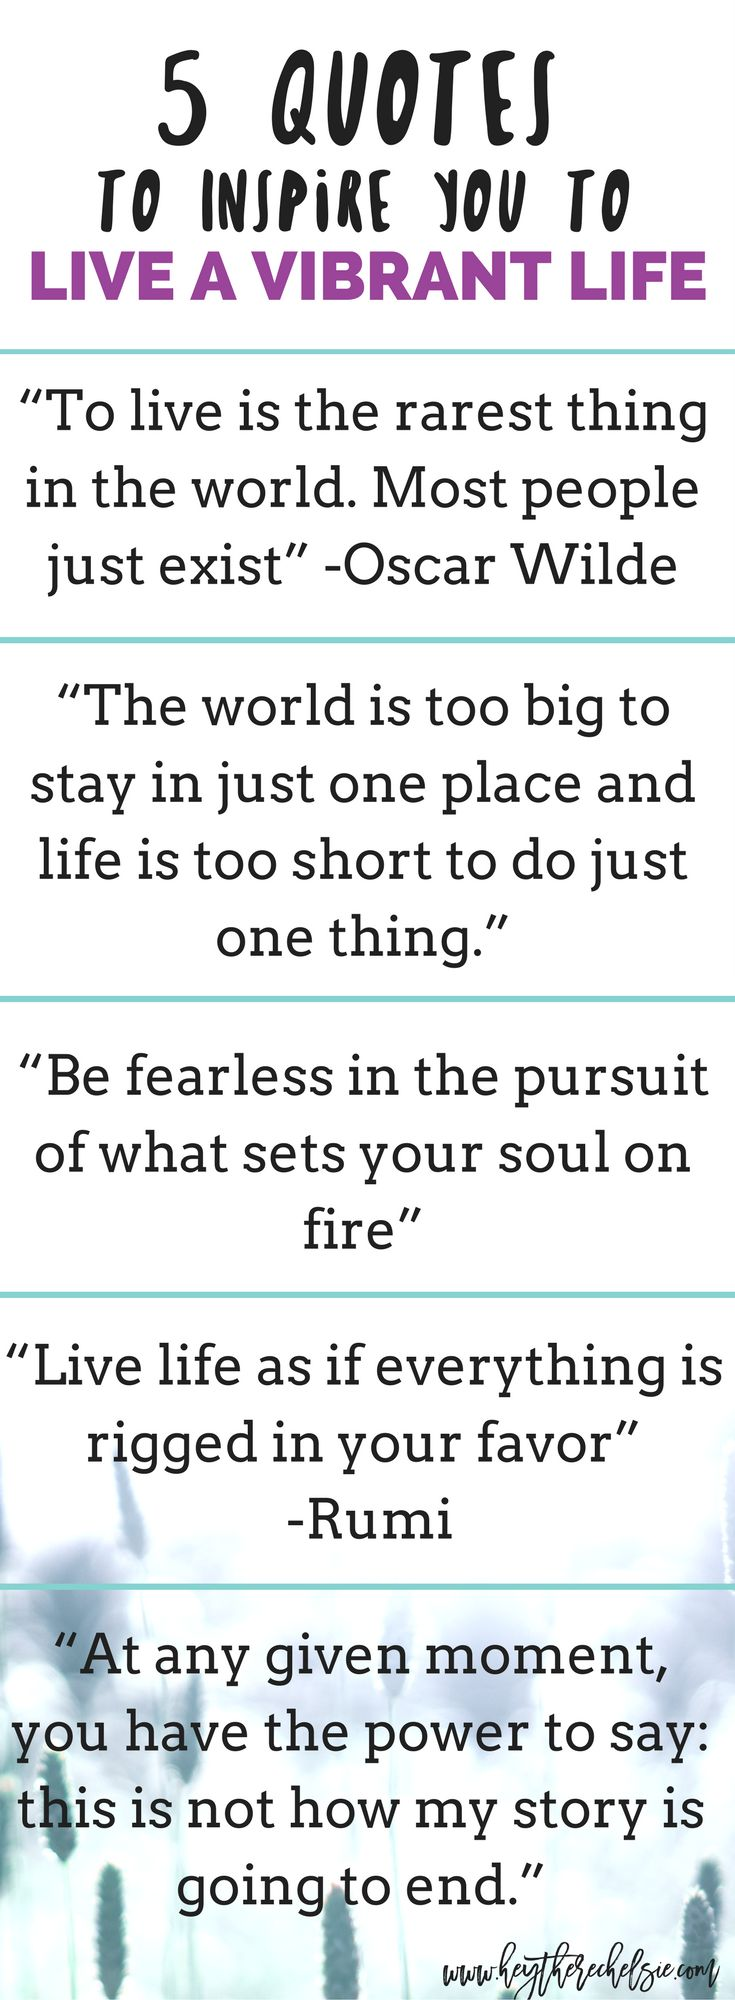 20 Quotes to Inspire you to Live a Vibrant Life